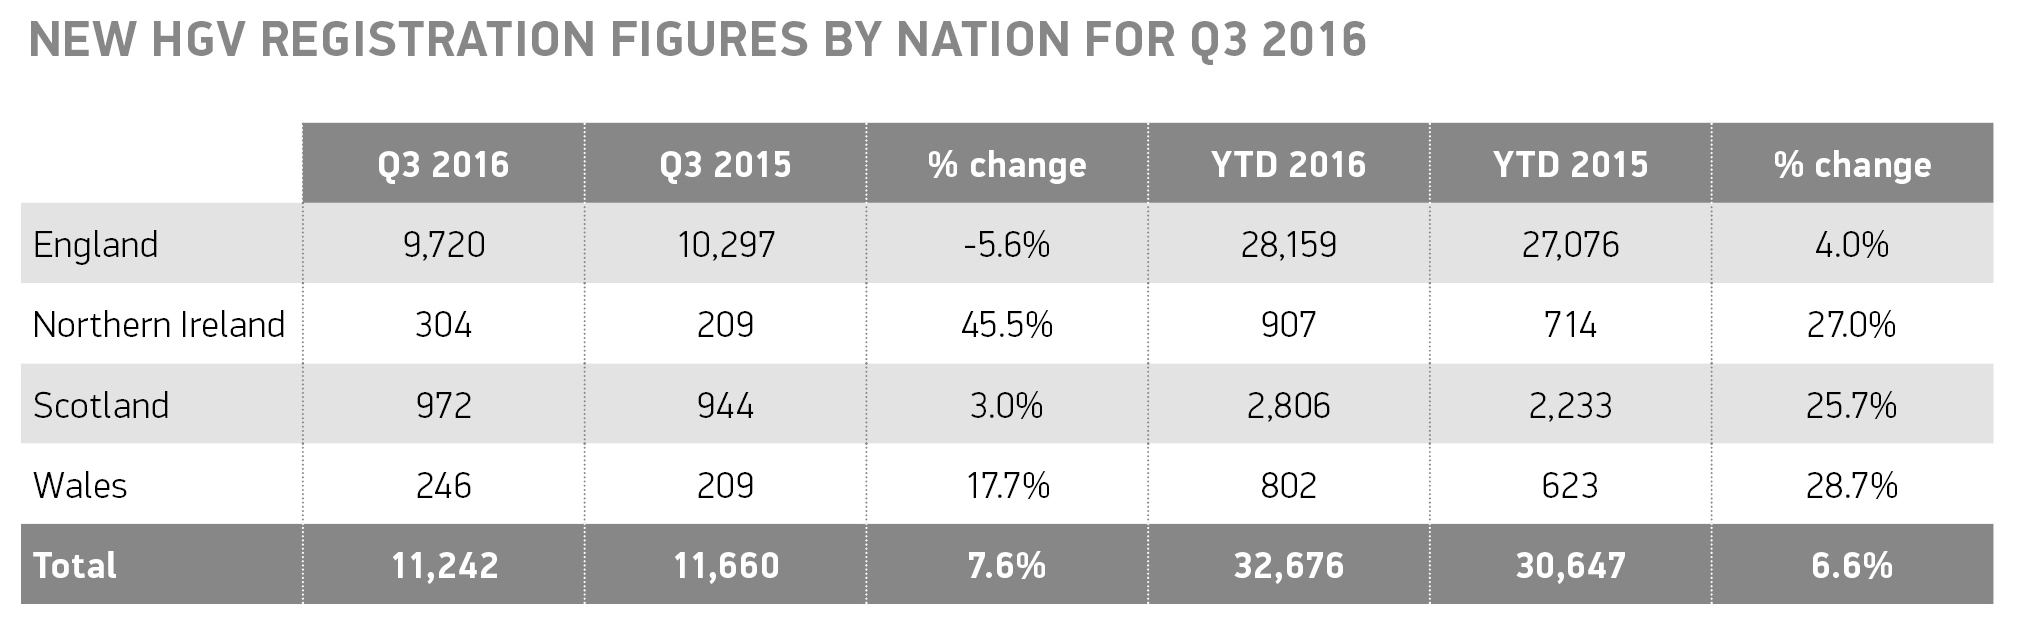 q3-hgv-registration-by-nation-table